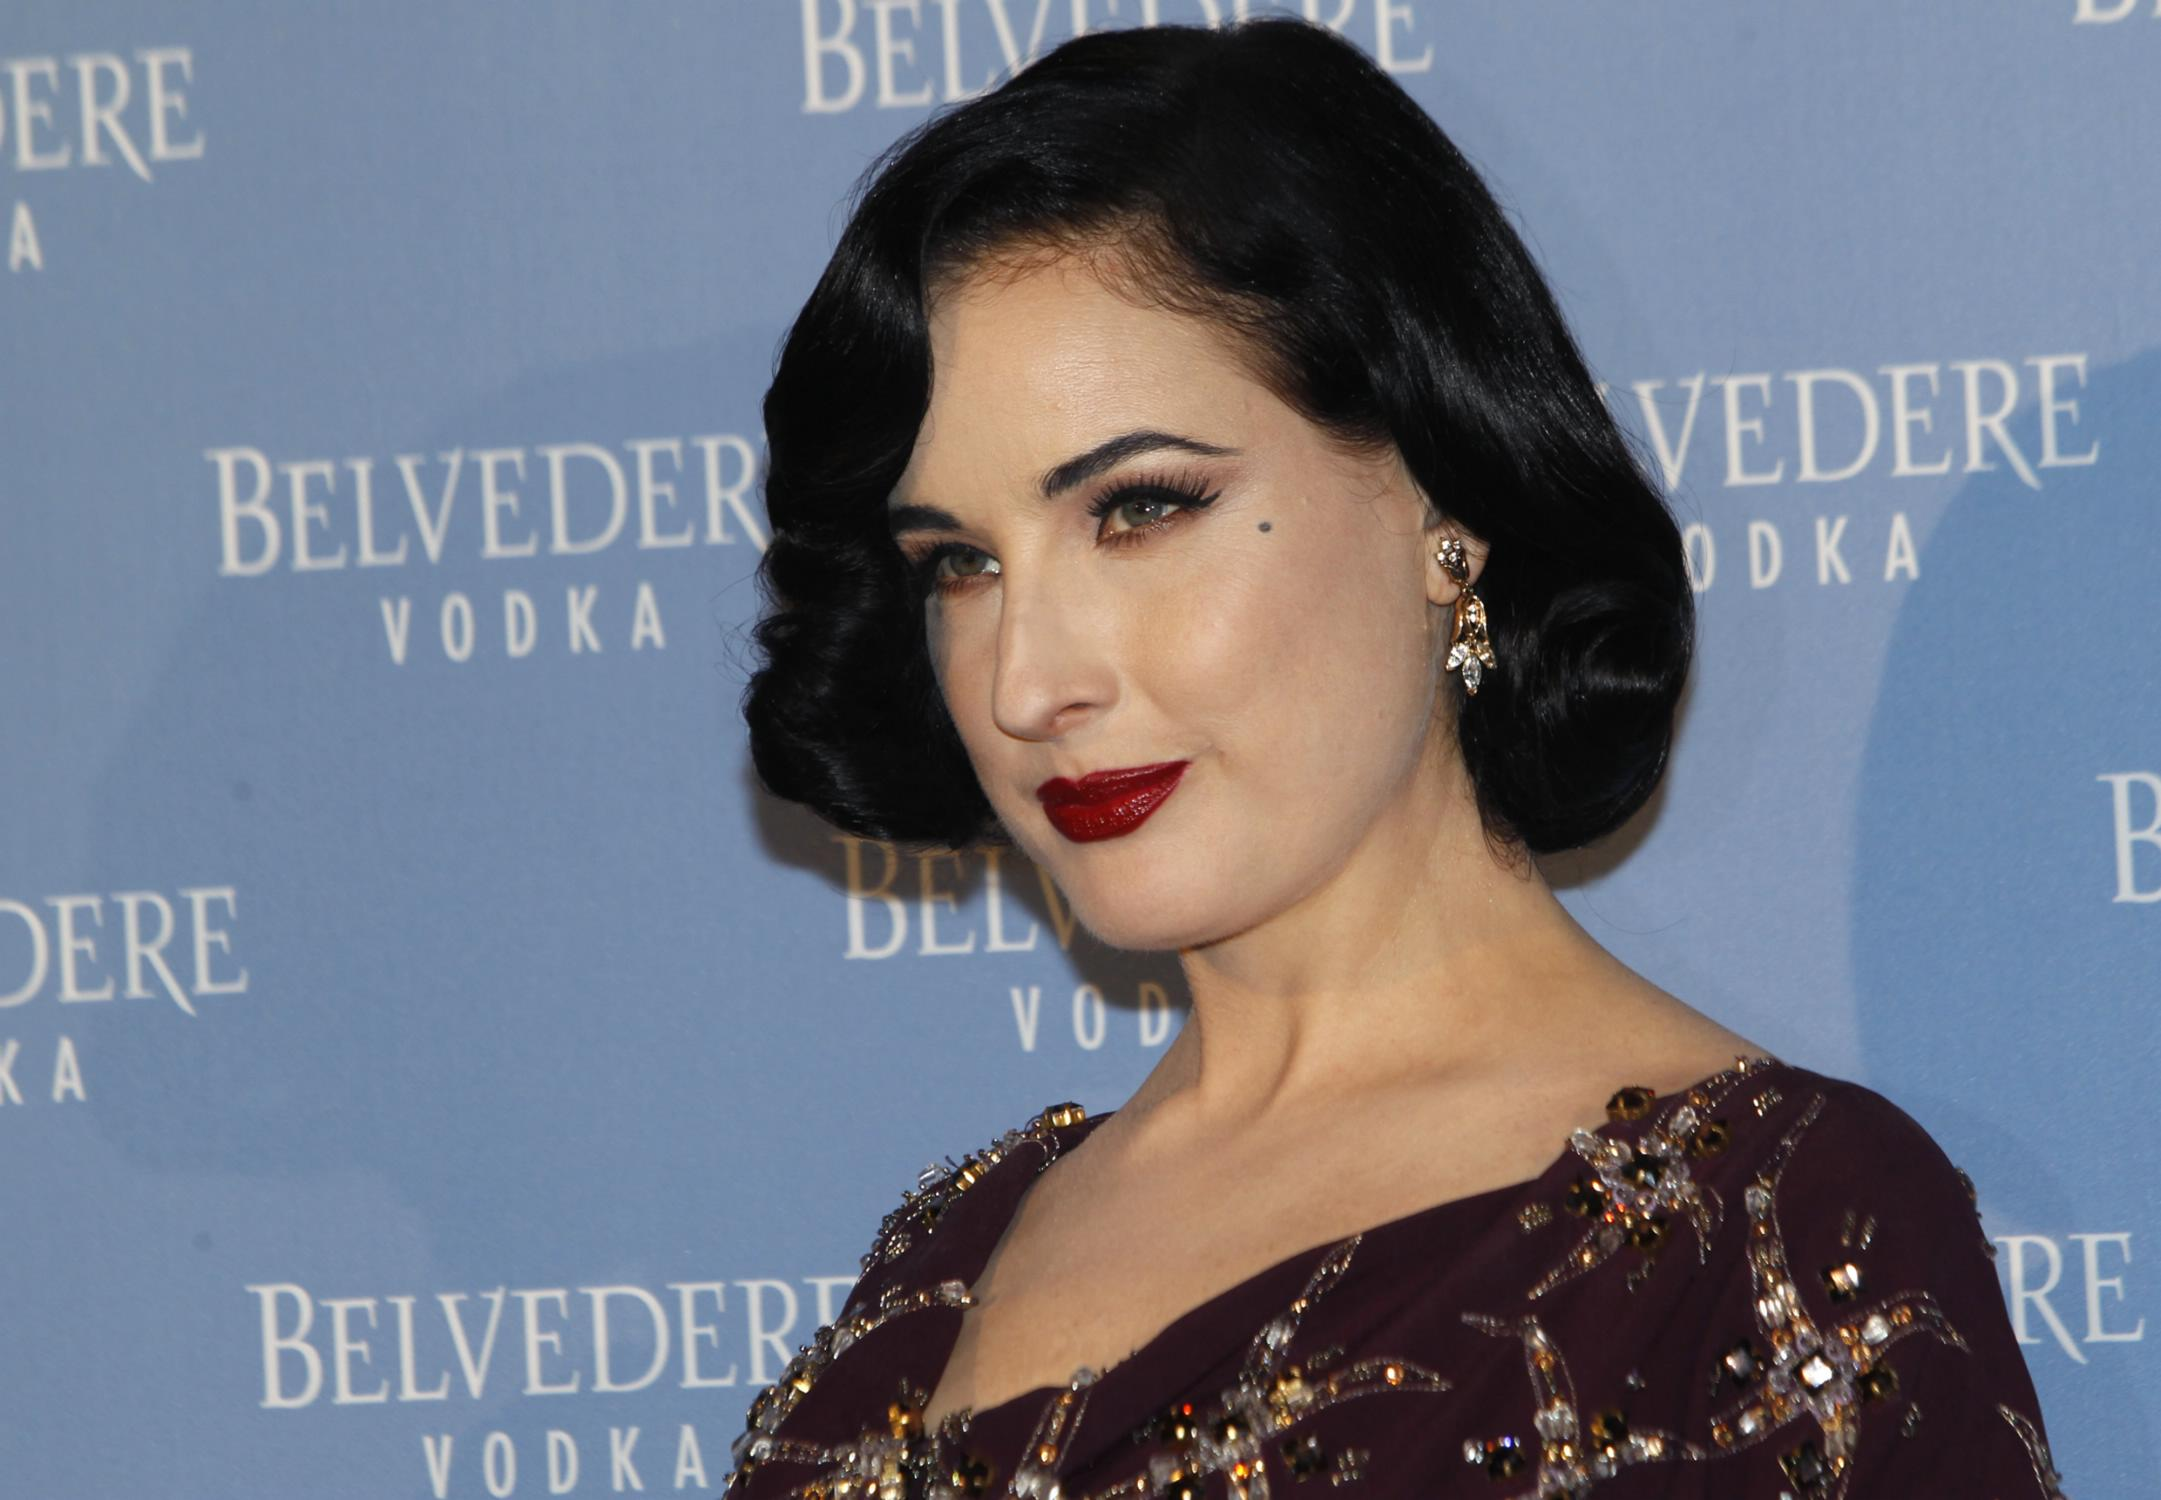 Dita Von Teese Attends Belvedere Vodka Event-4